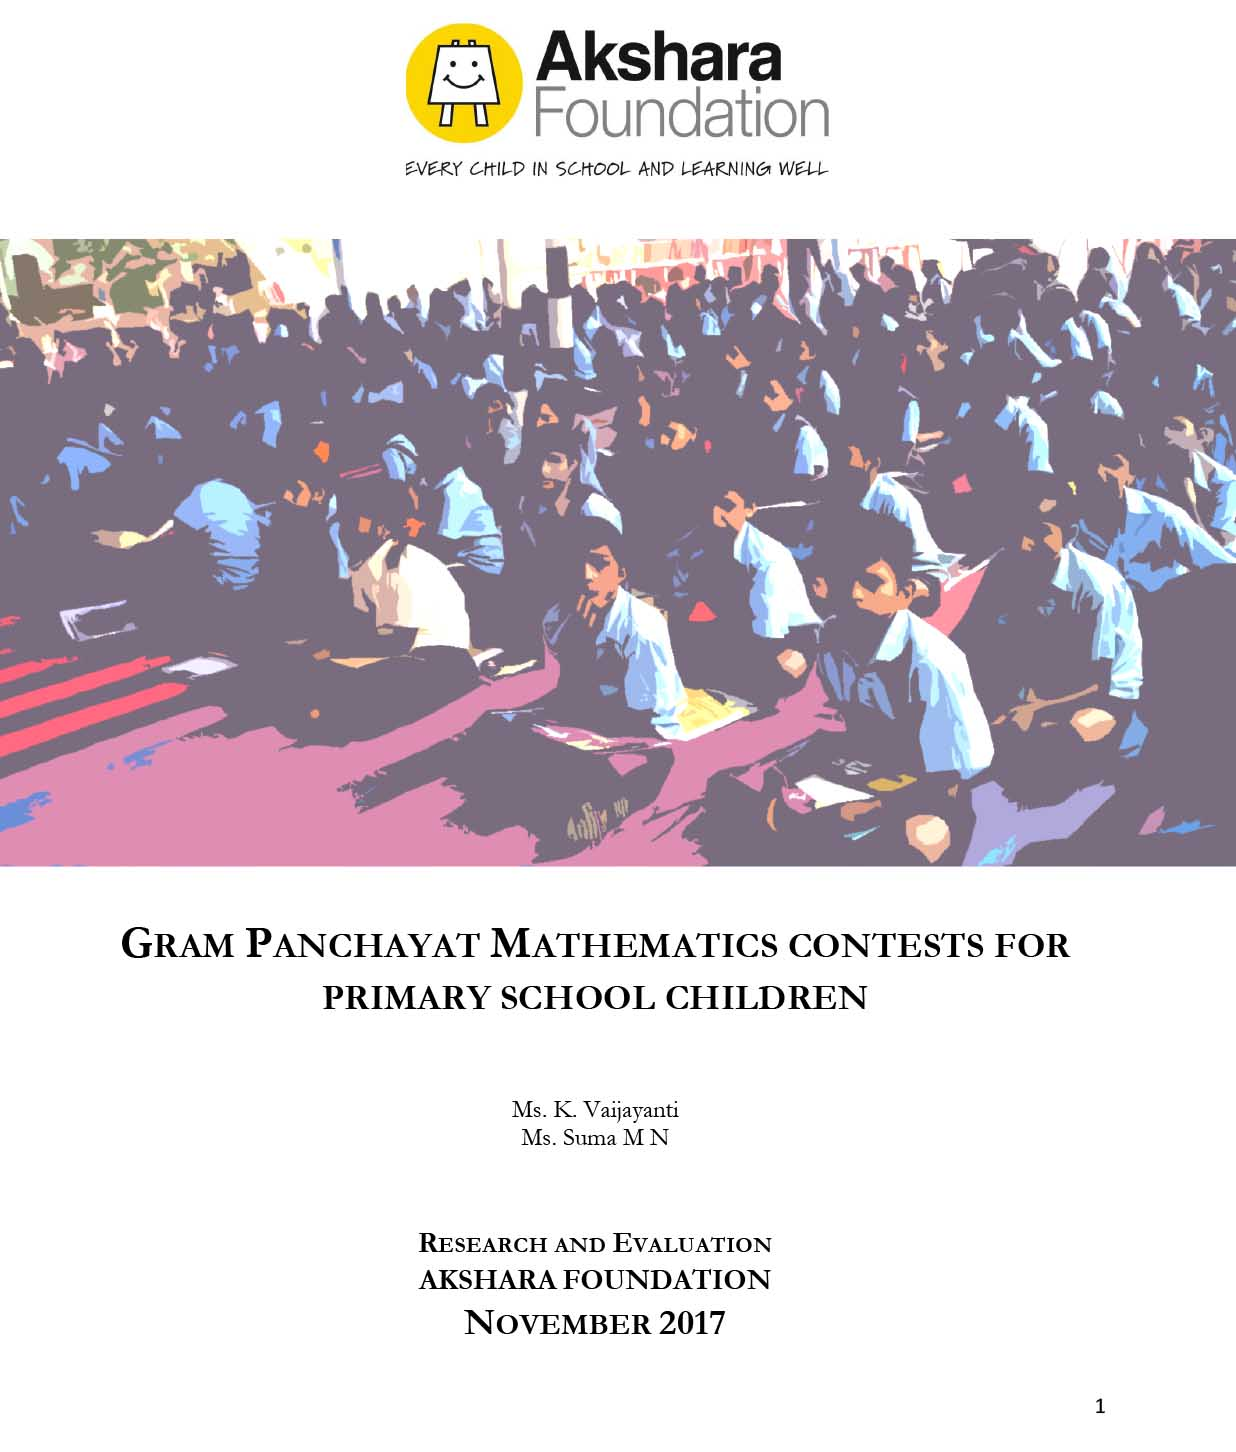 Gram Panchayat Mathematics Contests for Primary School Children, 2017